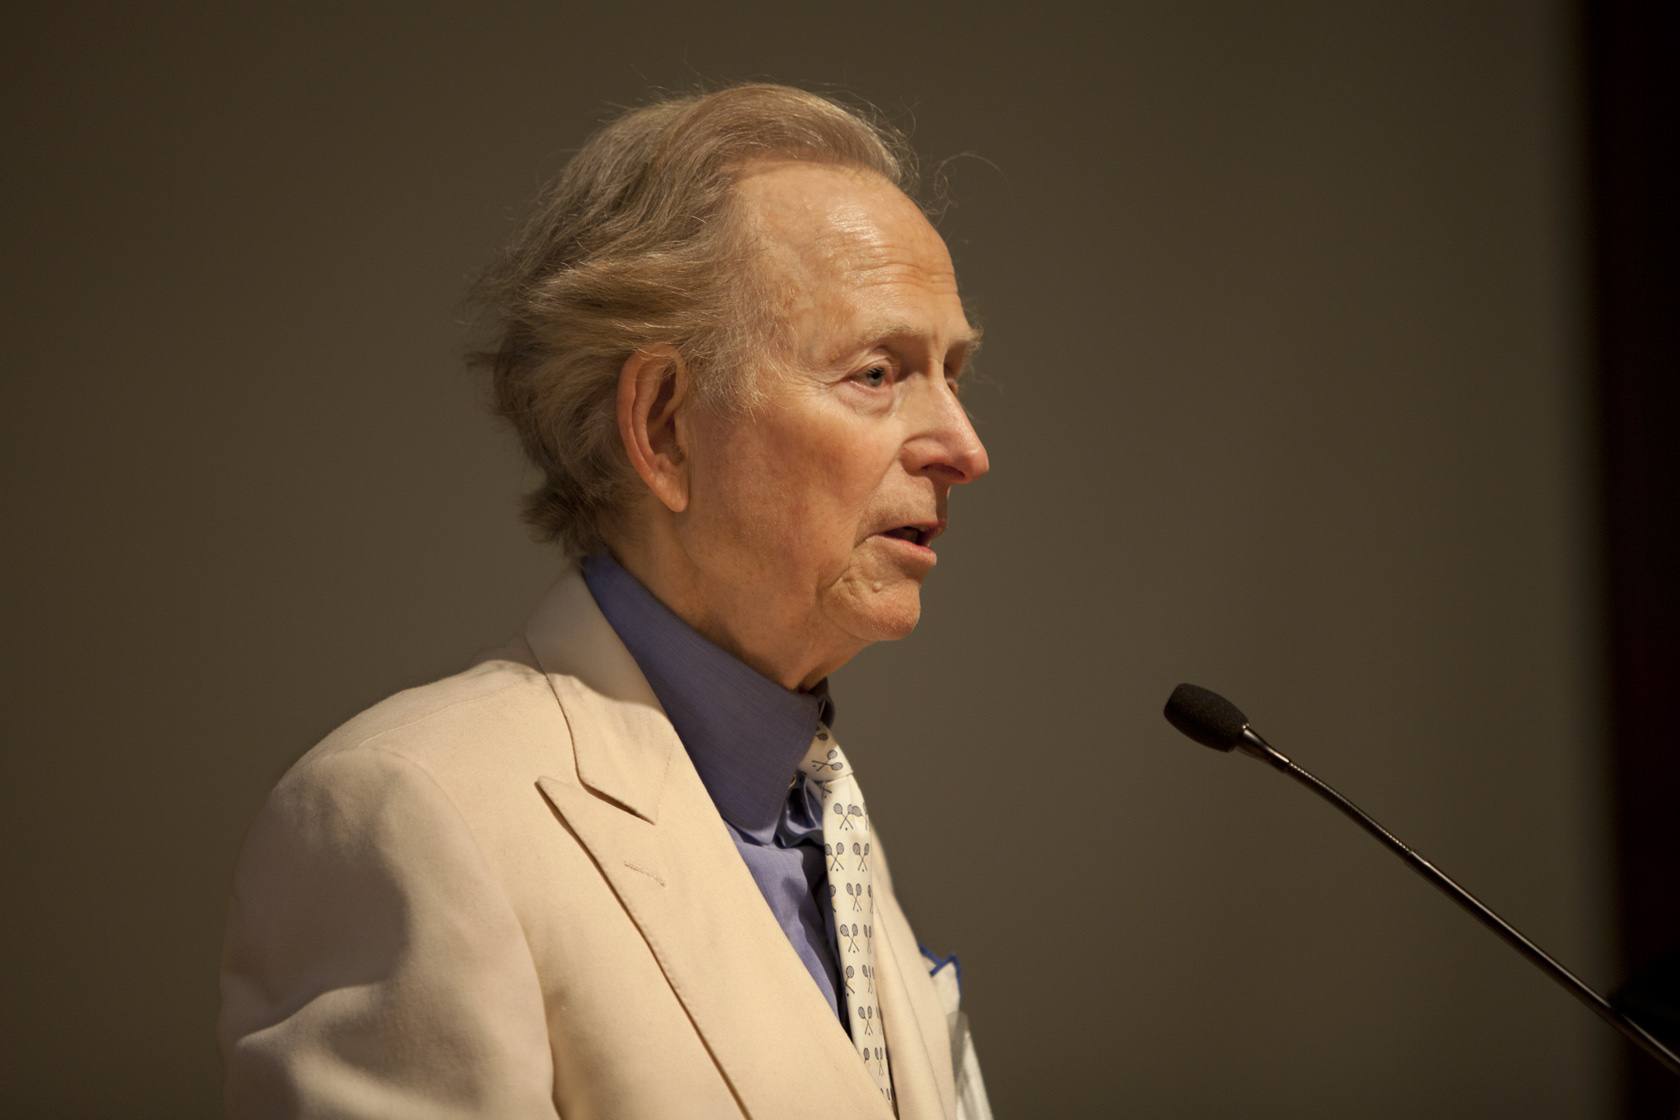 12-tom-wolfe-at-podium.jpg